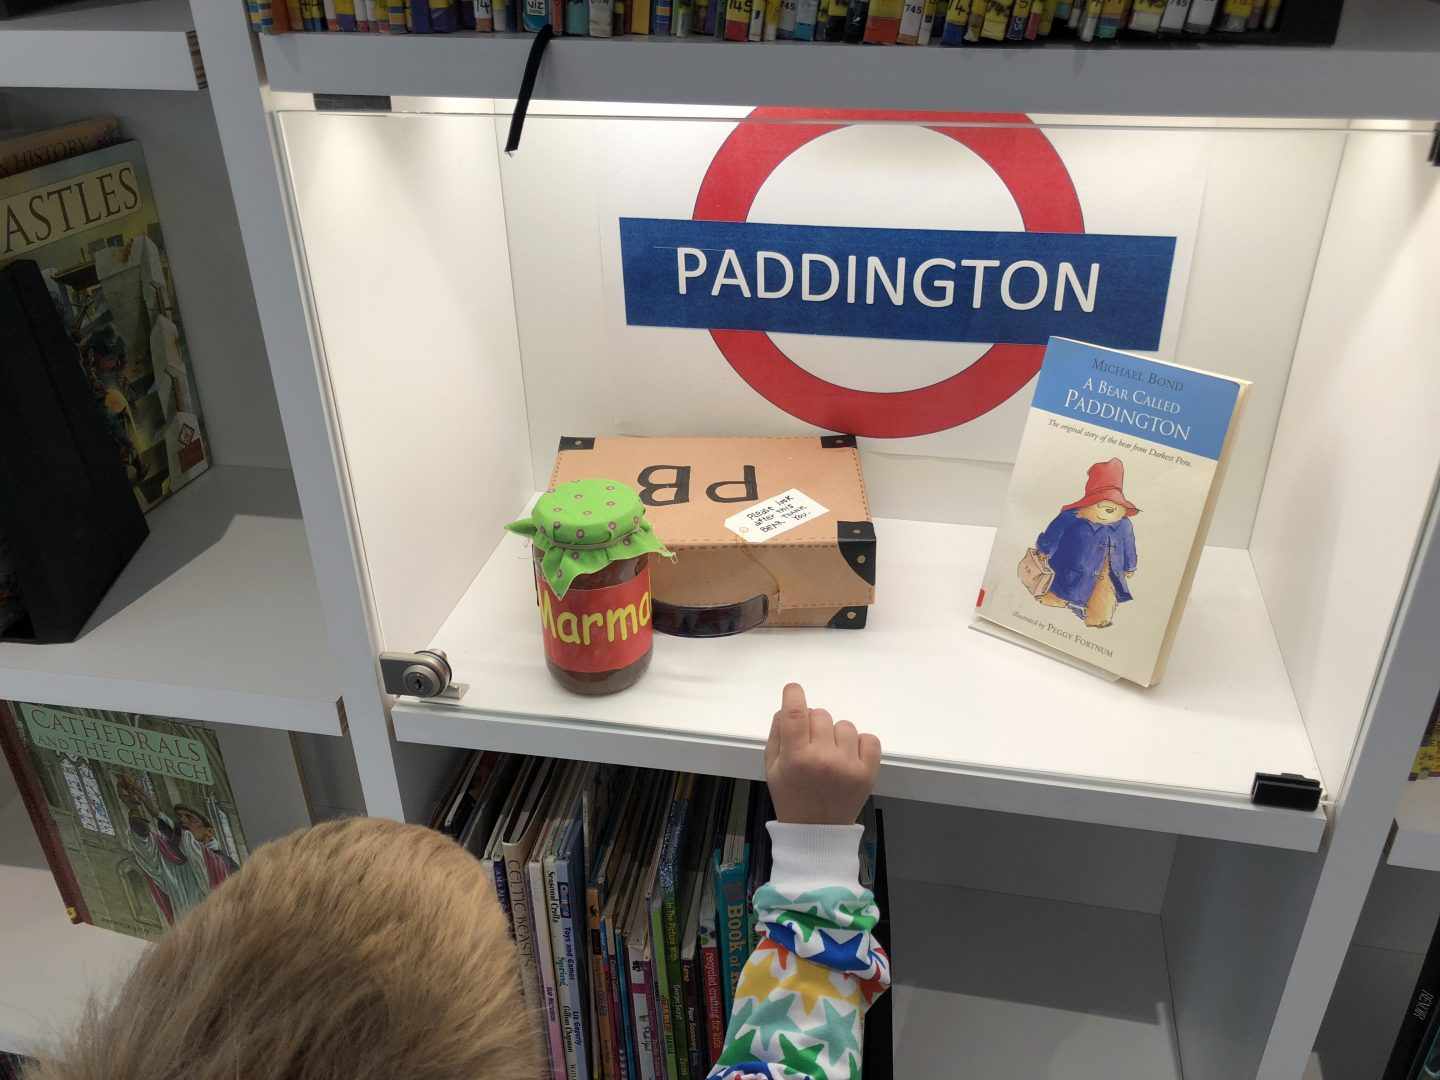 Paddington display in library The Word South Shields